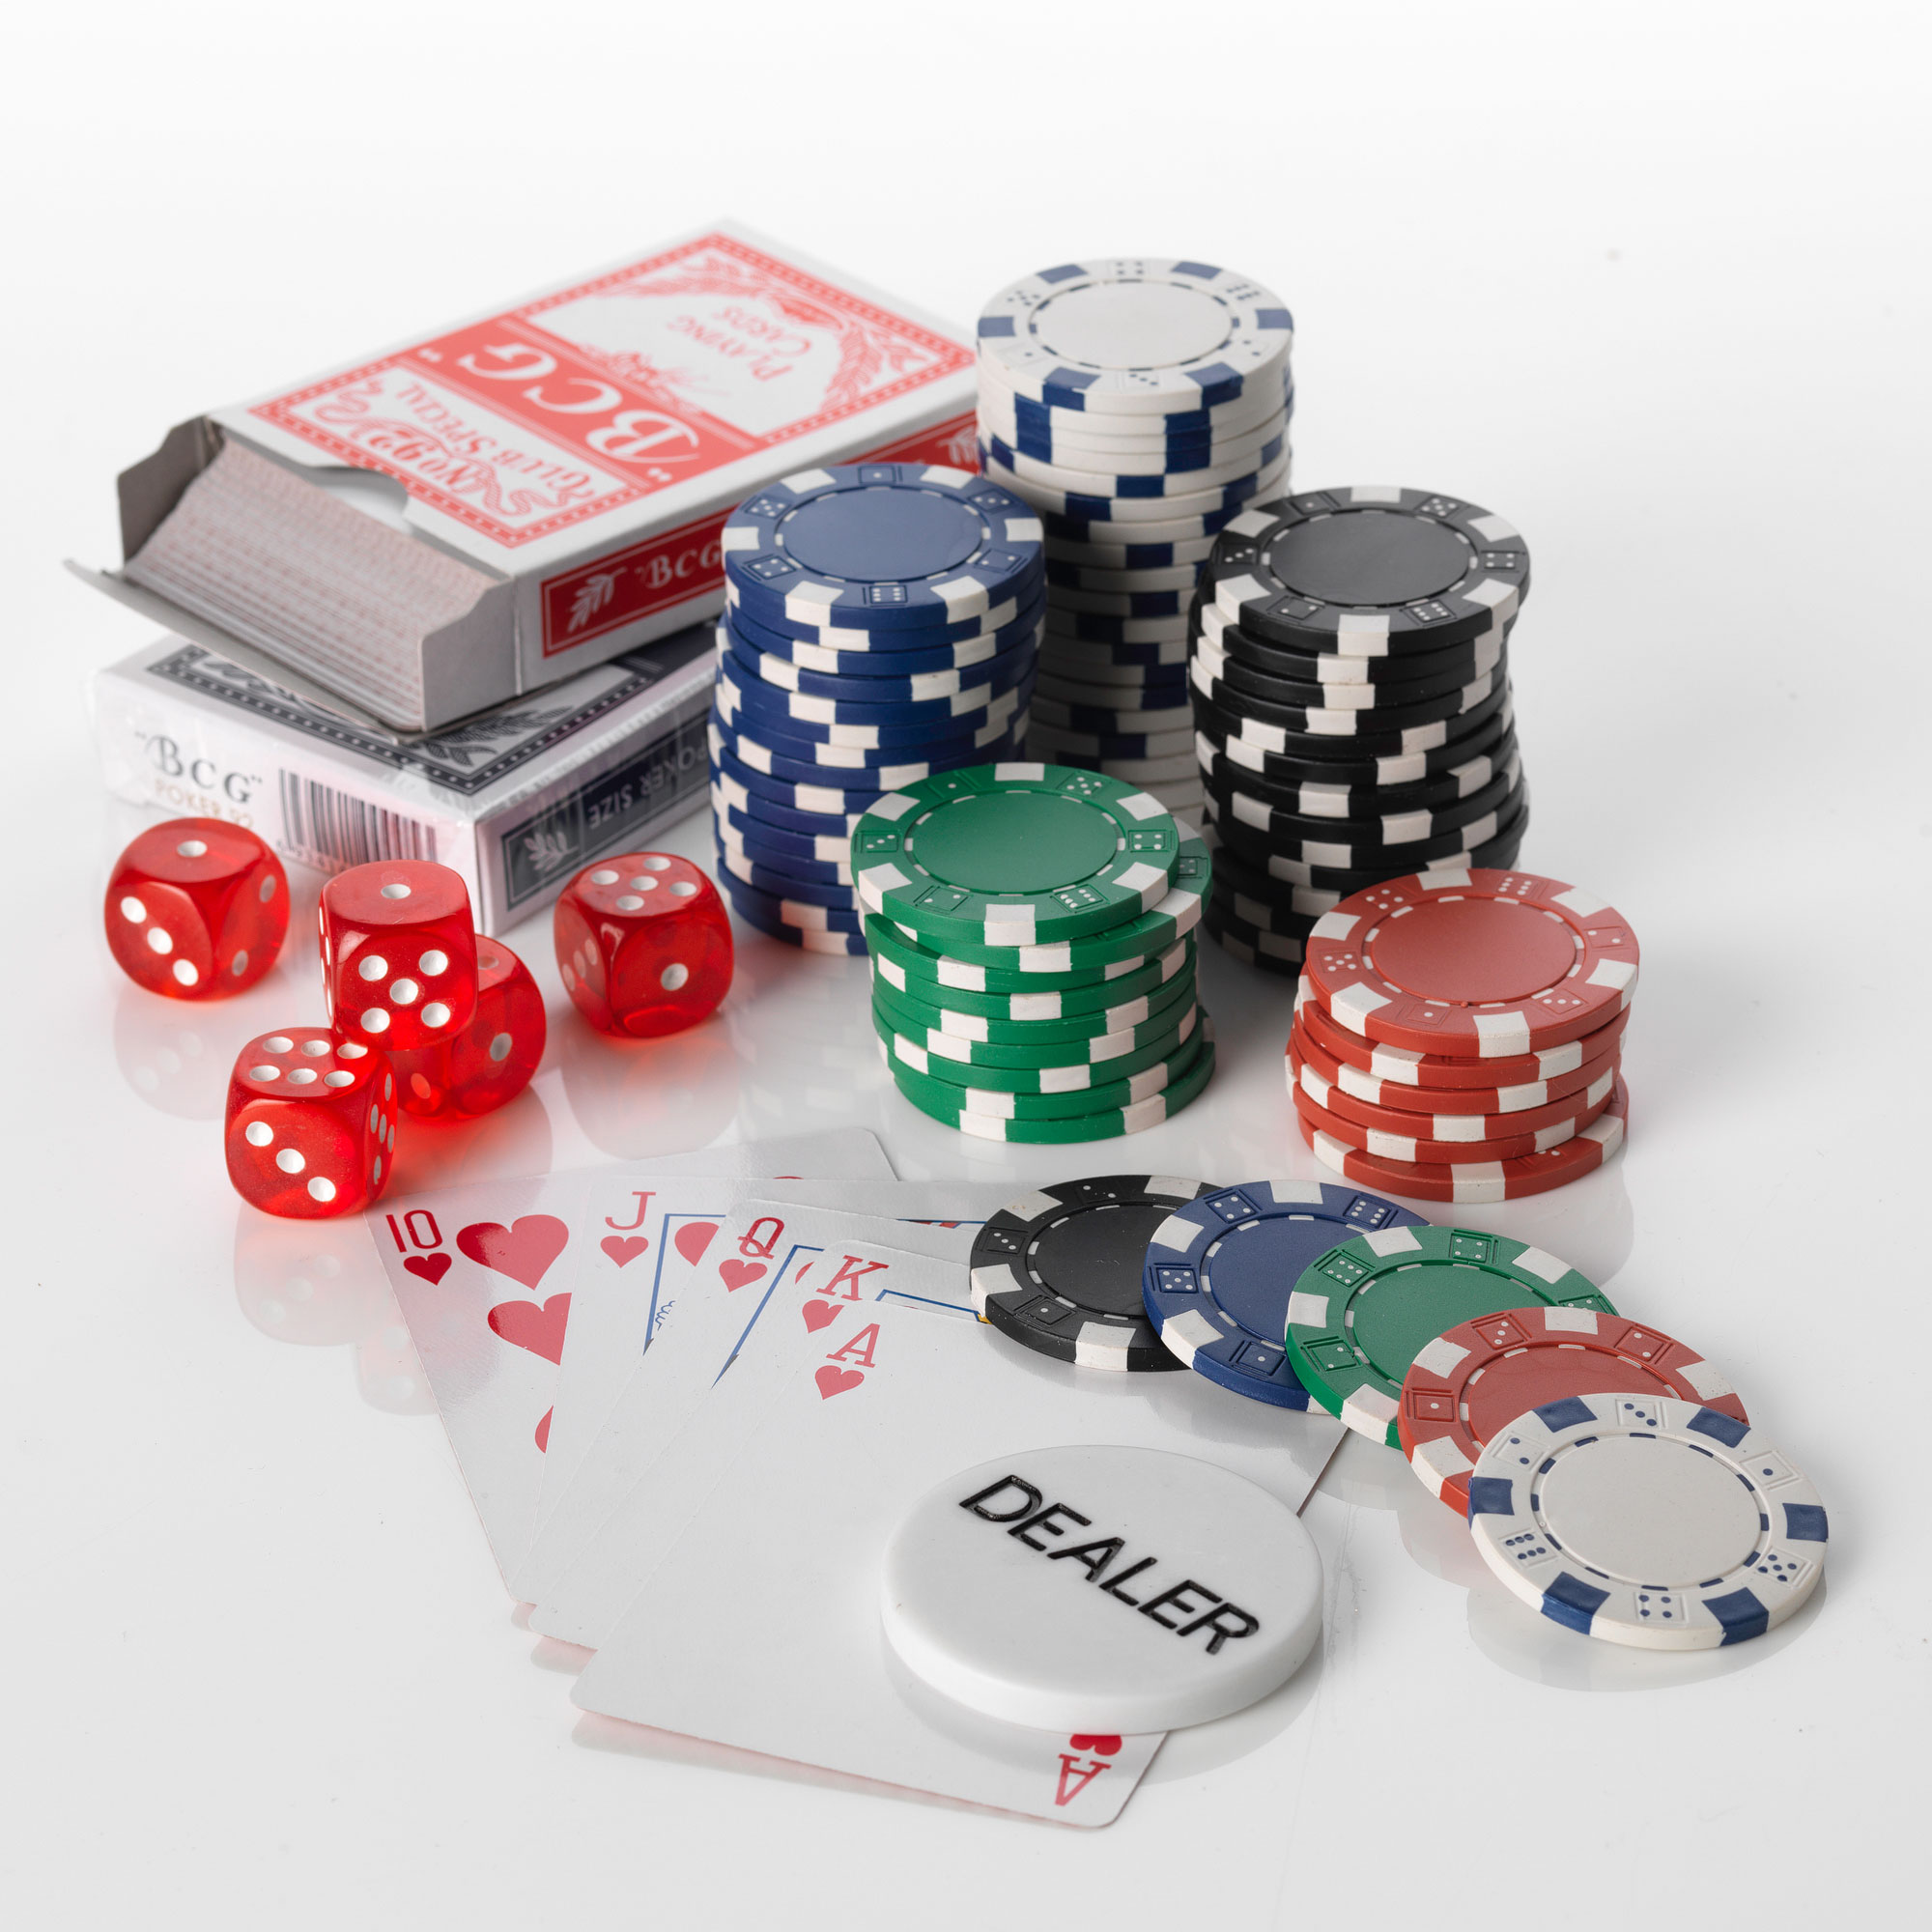 How to make casino chipset governor of poker 2 cheats money pc